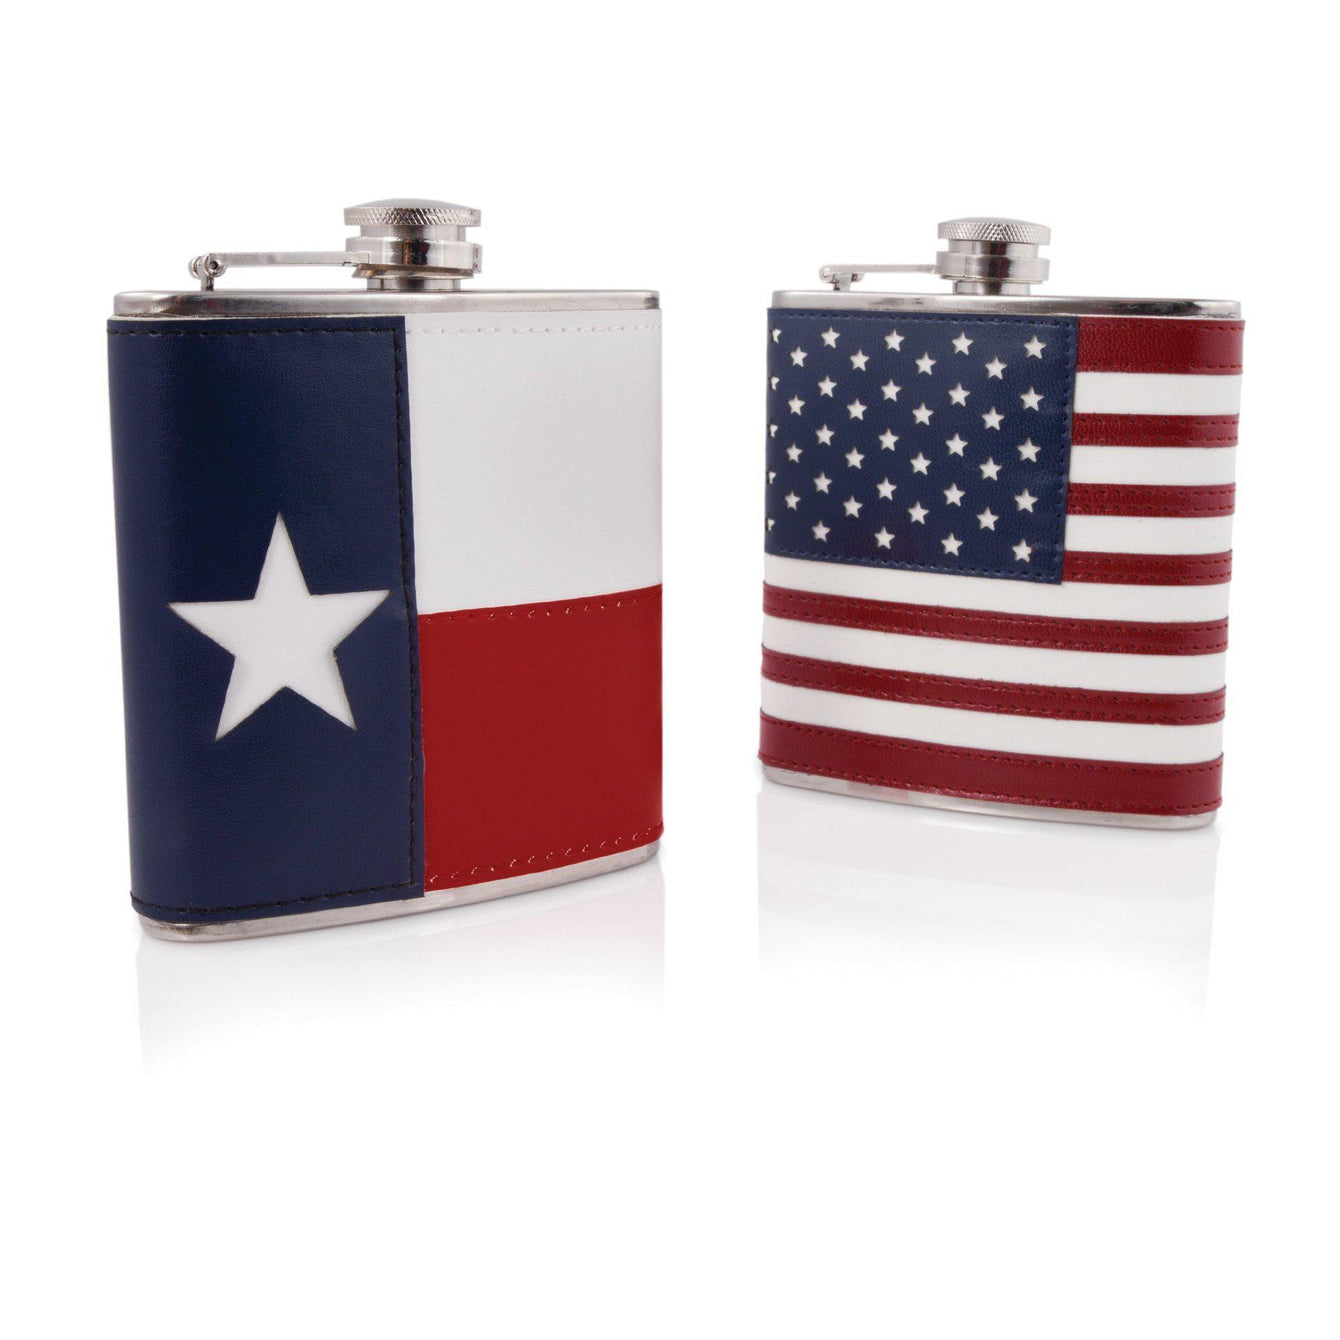 Patriotic 6 oz. Stainless Steel Flasks-Home - Travel + Outdoors - Flasks + Growlers-FOSTER AND RYE-American Flag-Peccadilly